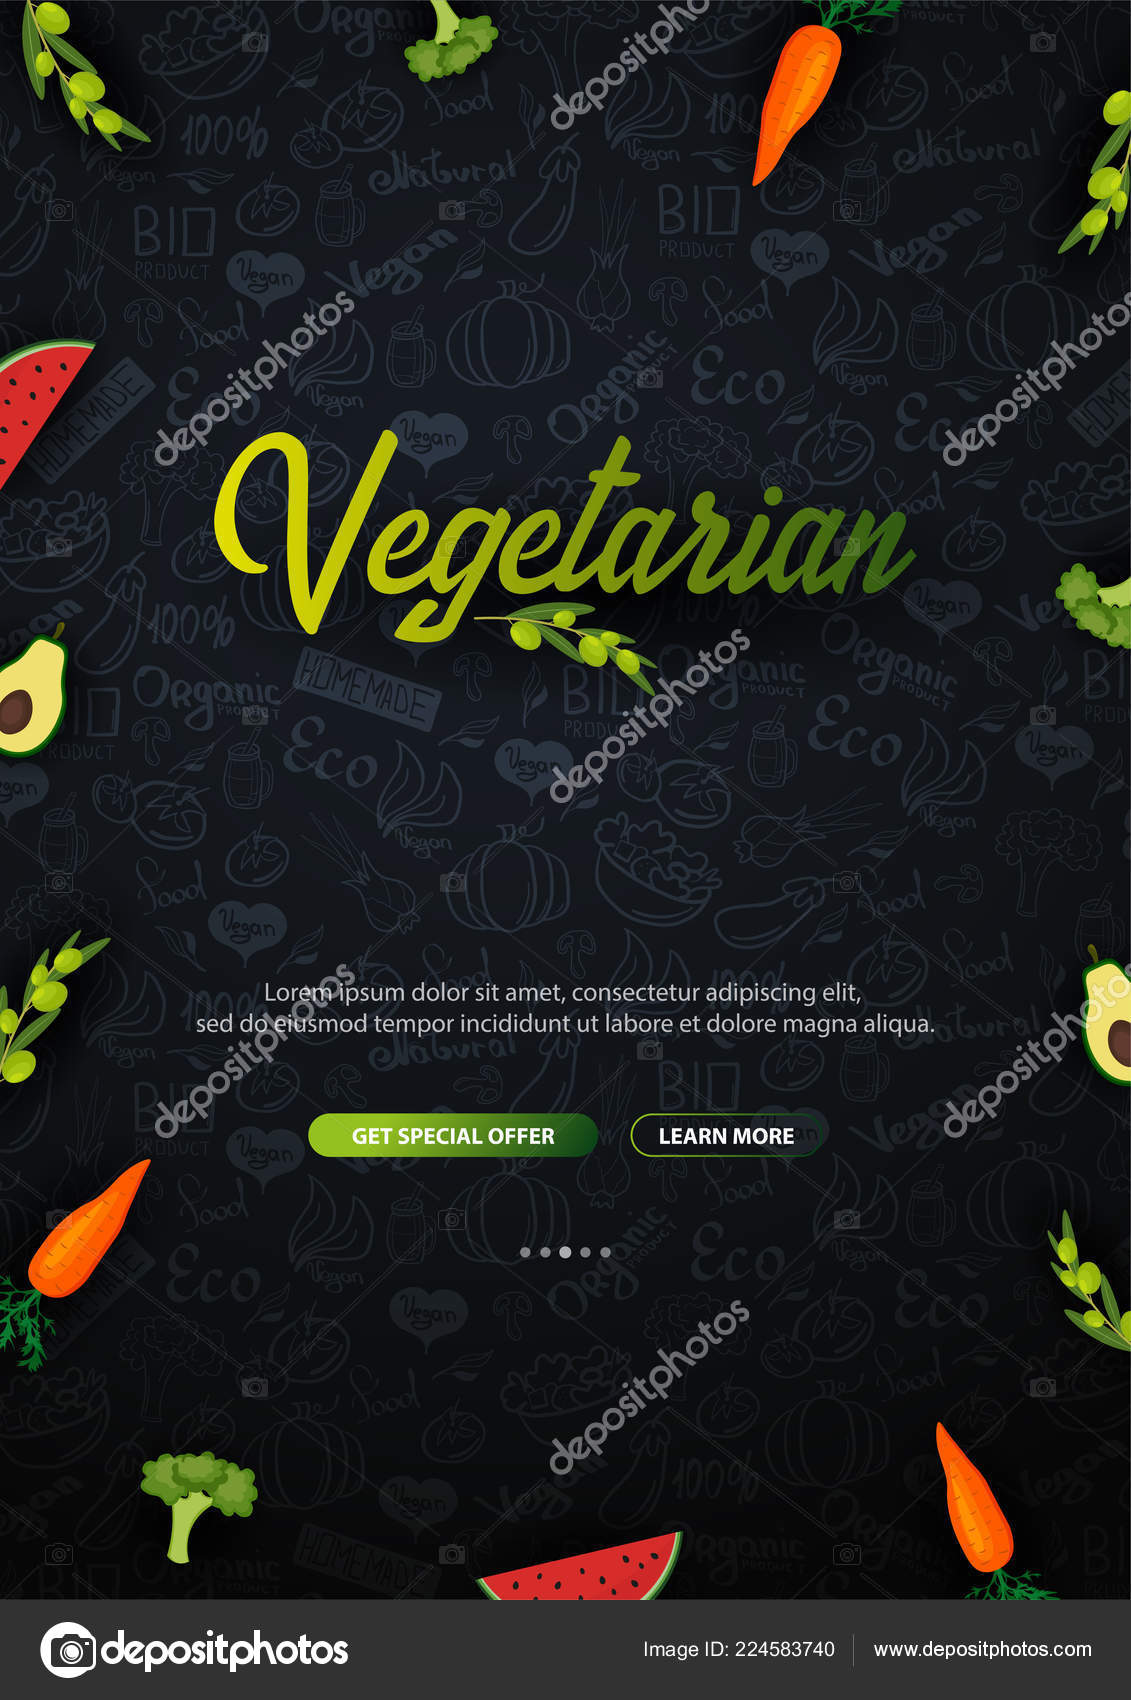 Go Vegan Healthy Food Vegetarian Banner Hand Draw Doodle Background Vector Illustration Stock Vector C Leo Design 224583740